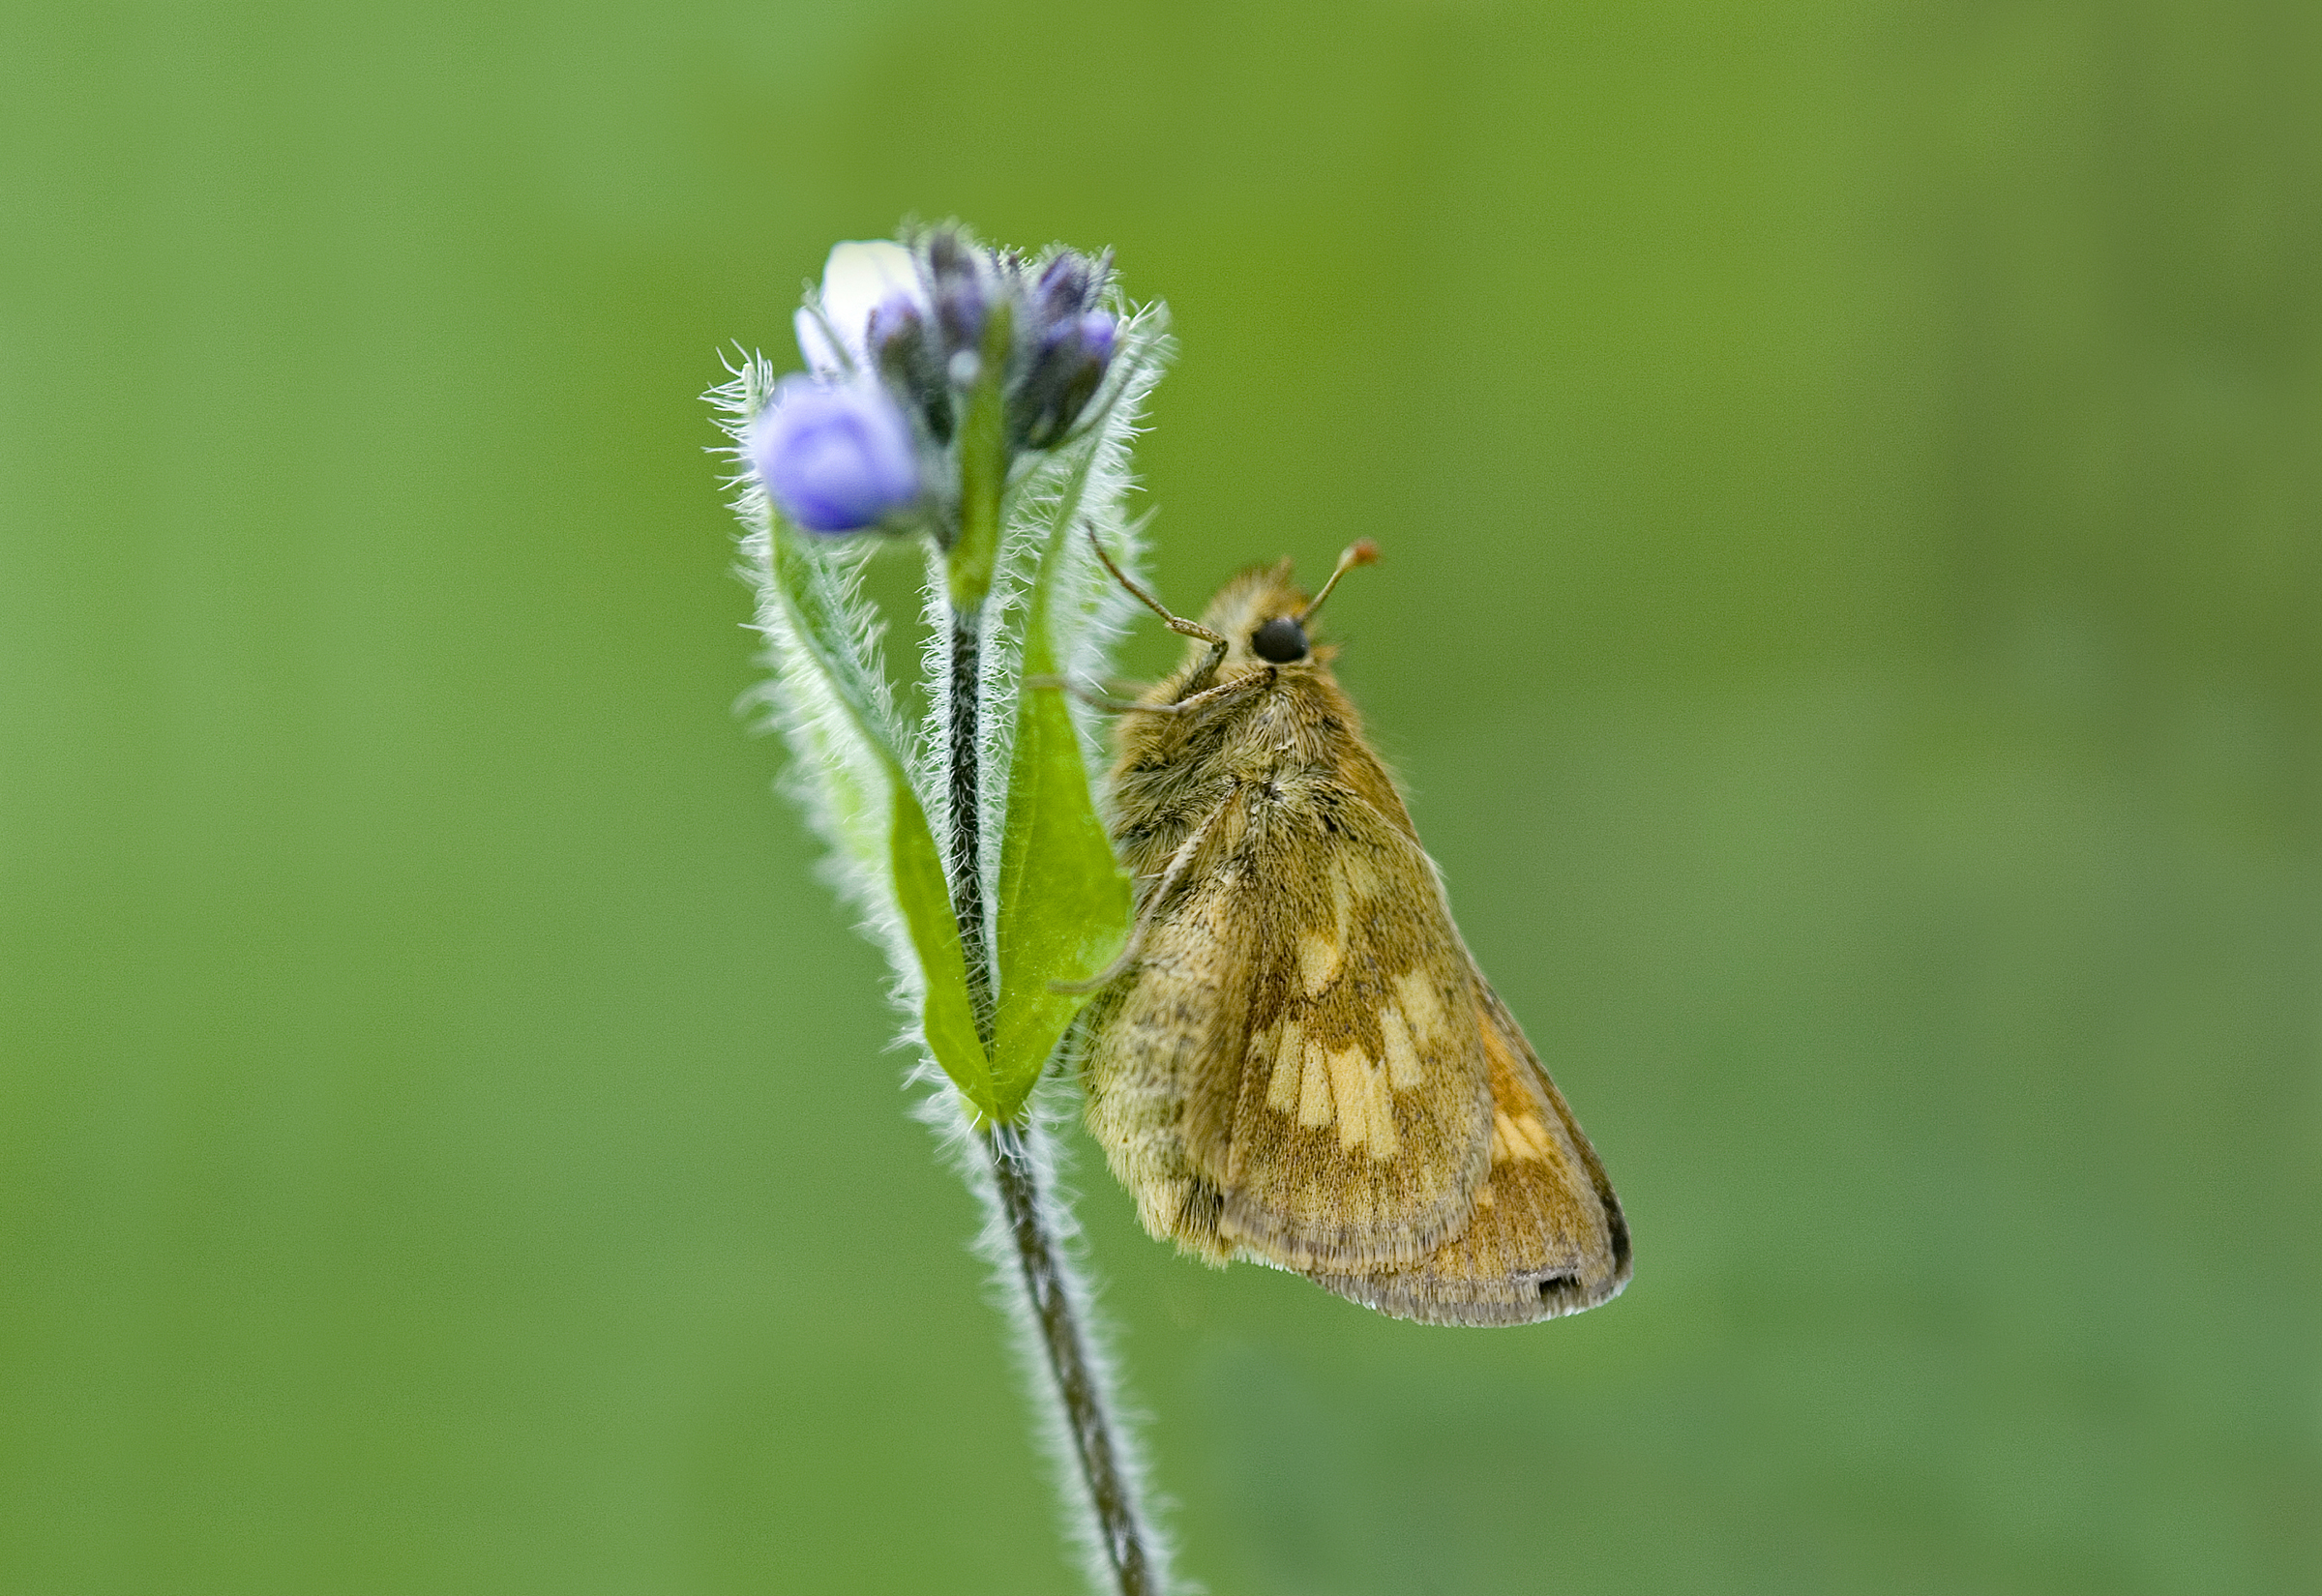 A small brown butterfly clings to an upright flower stem. It is set against a green background.